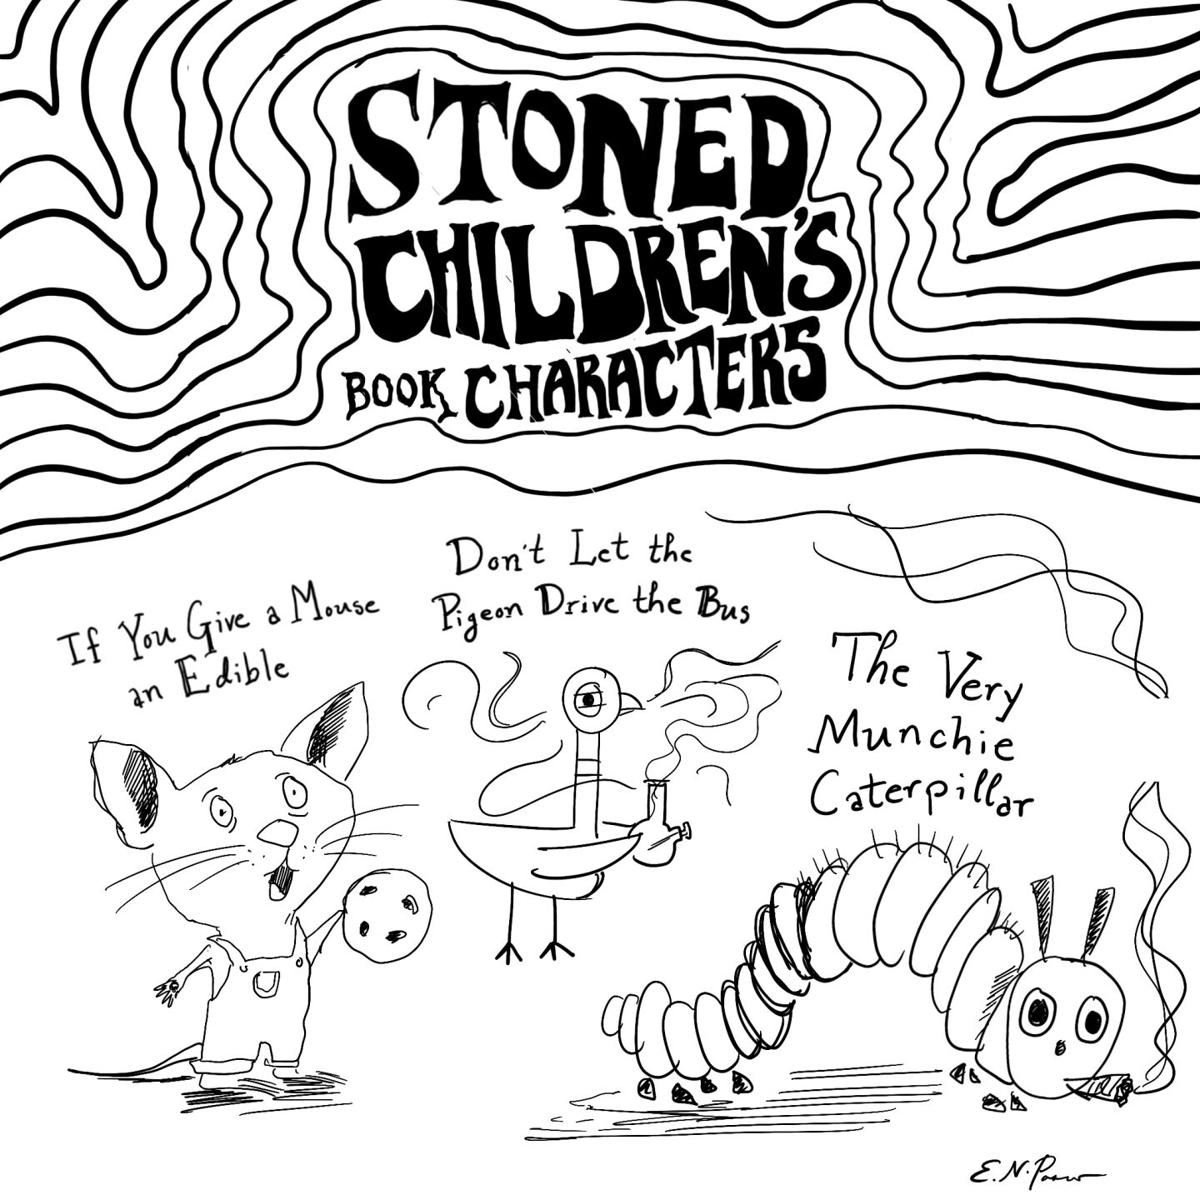 Stoned children's book characters